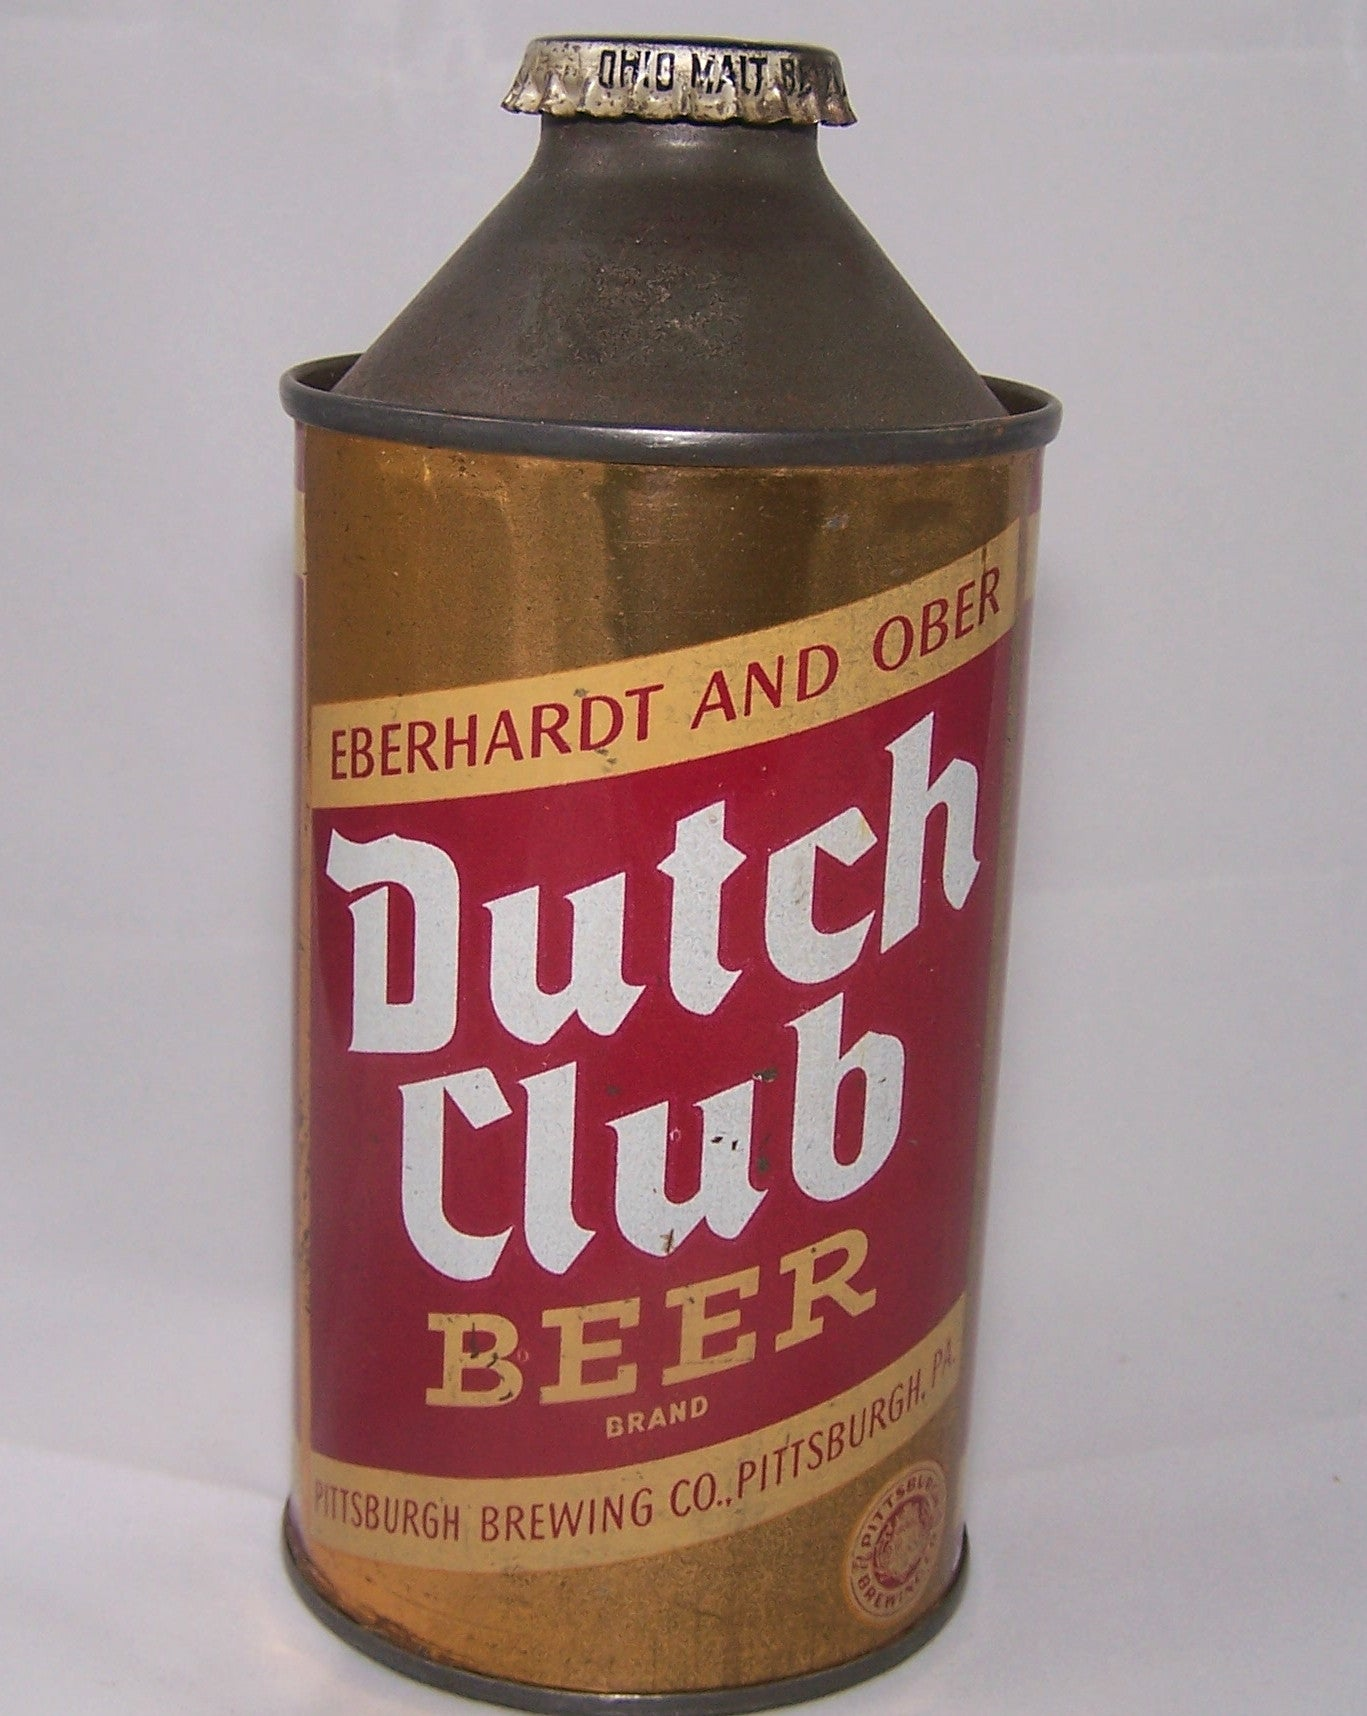 Dutch Club Beer, USBC 160-8, Grade 1/1- Sold 3/14/15